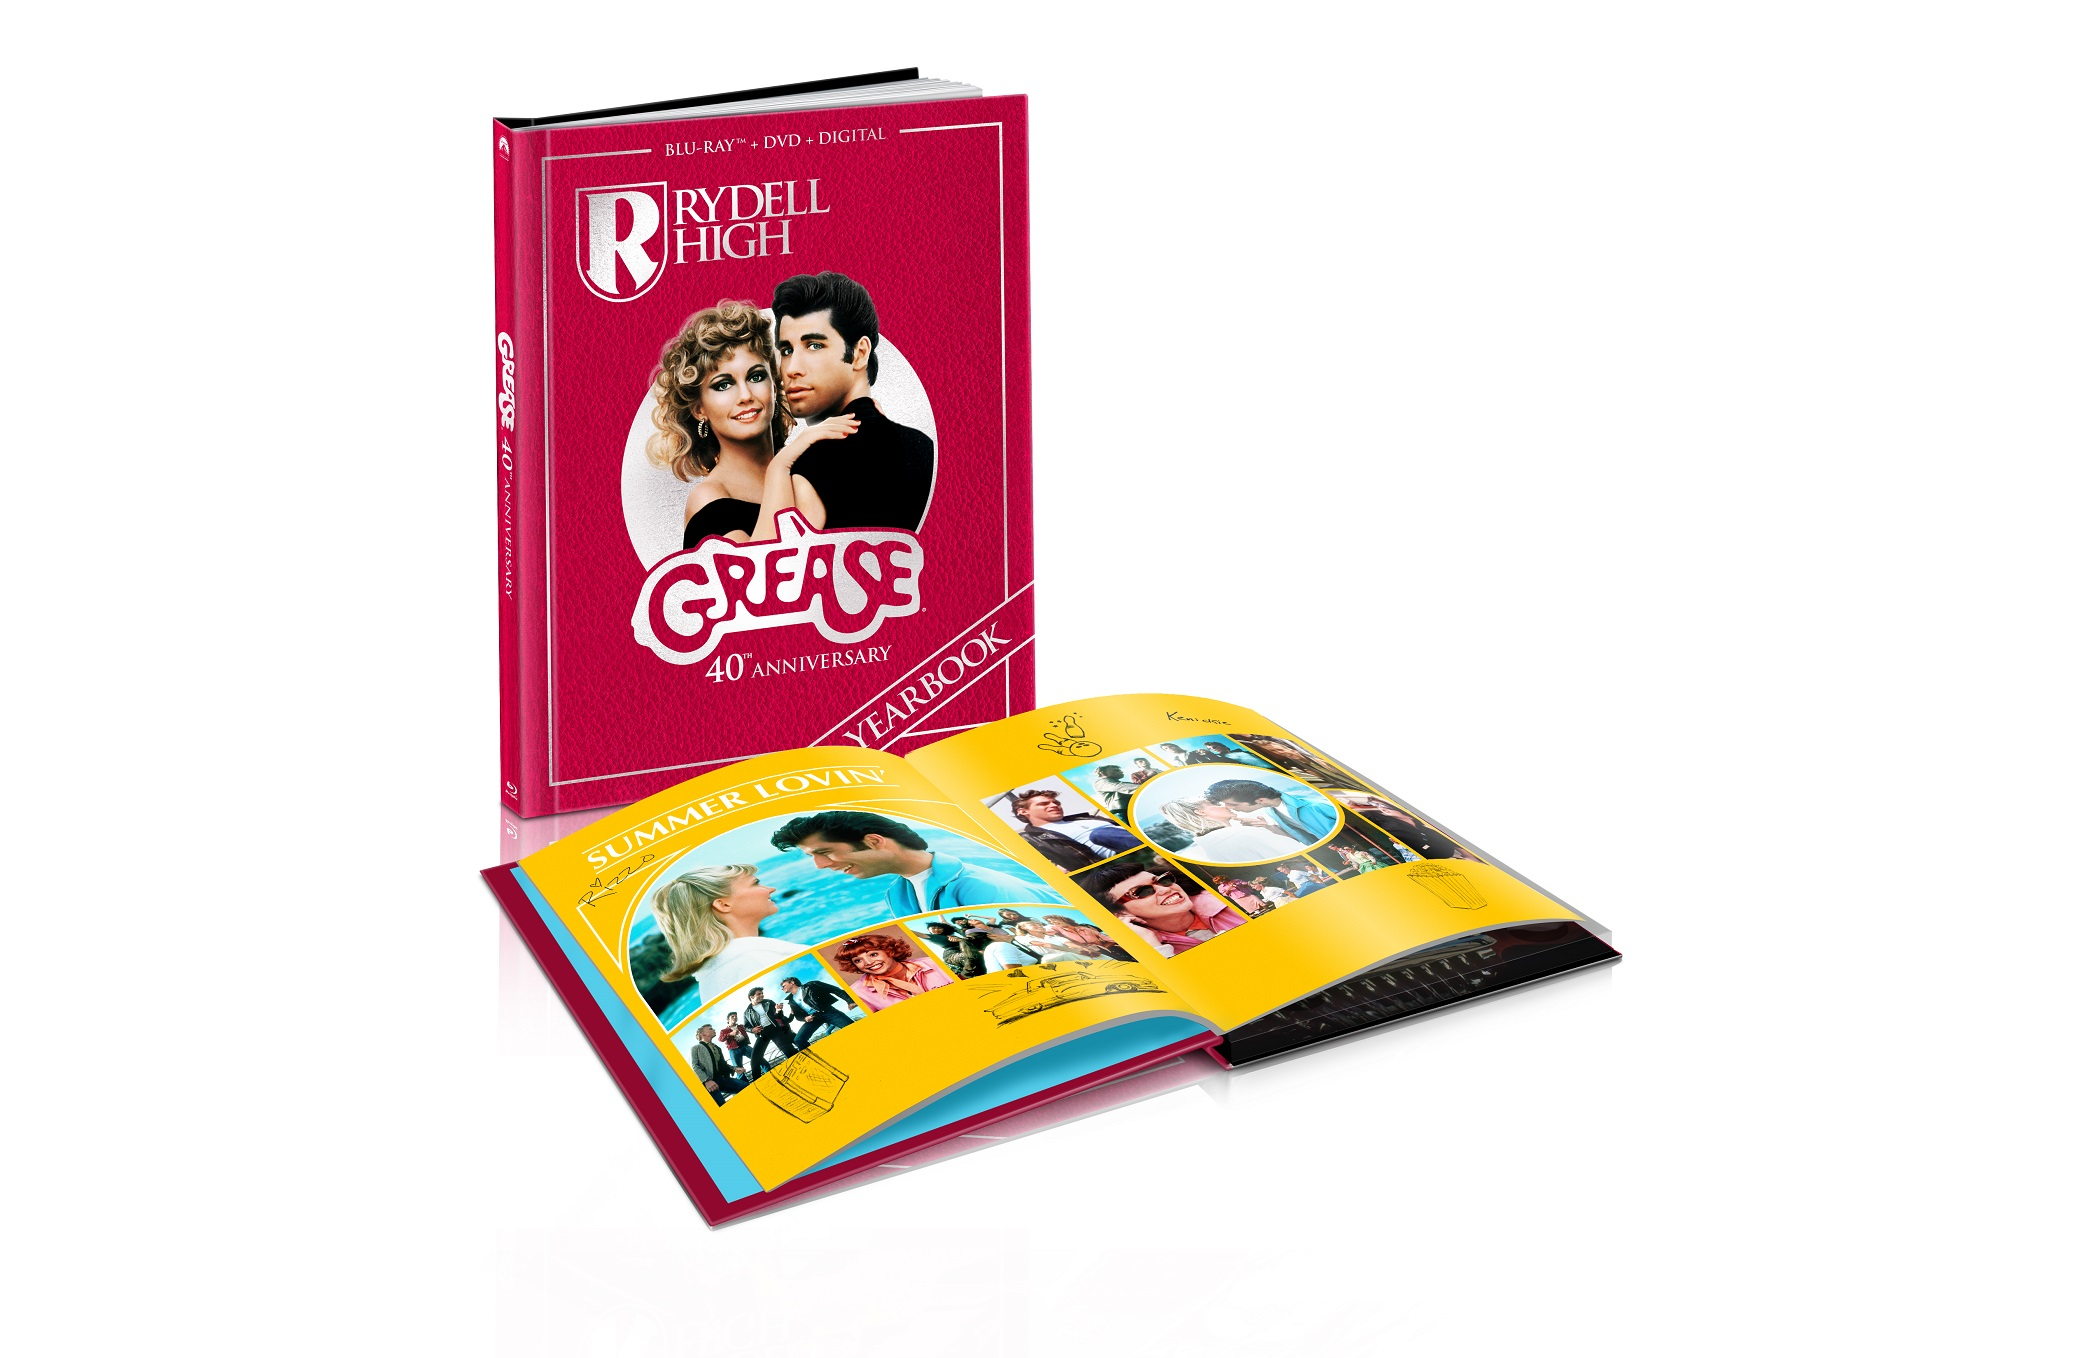 Grease Blu-ray Combo Pack with Year Book.jpg